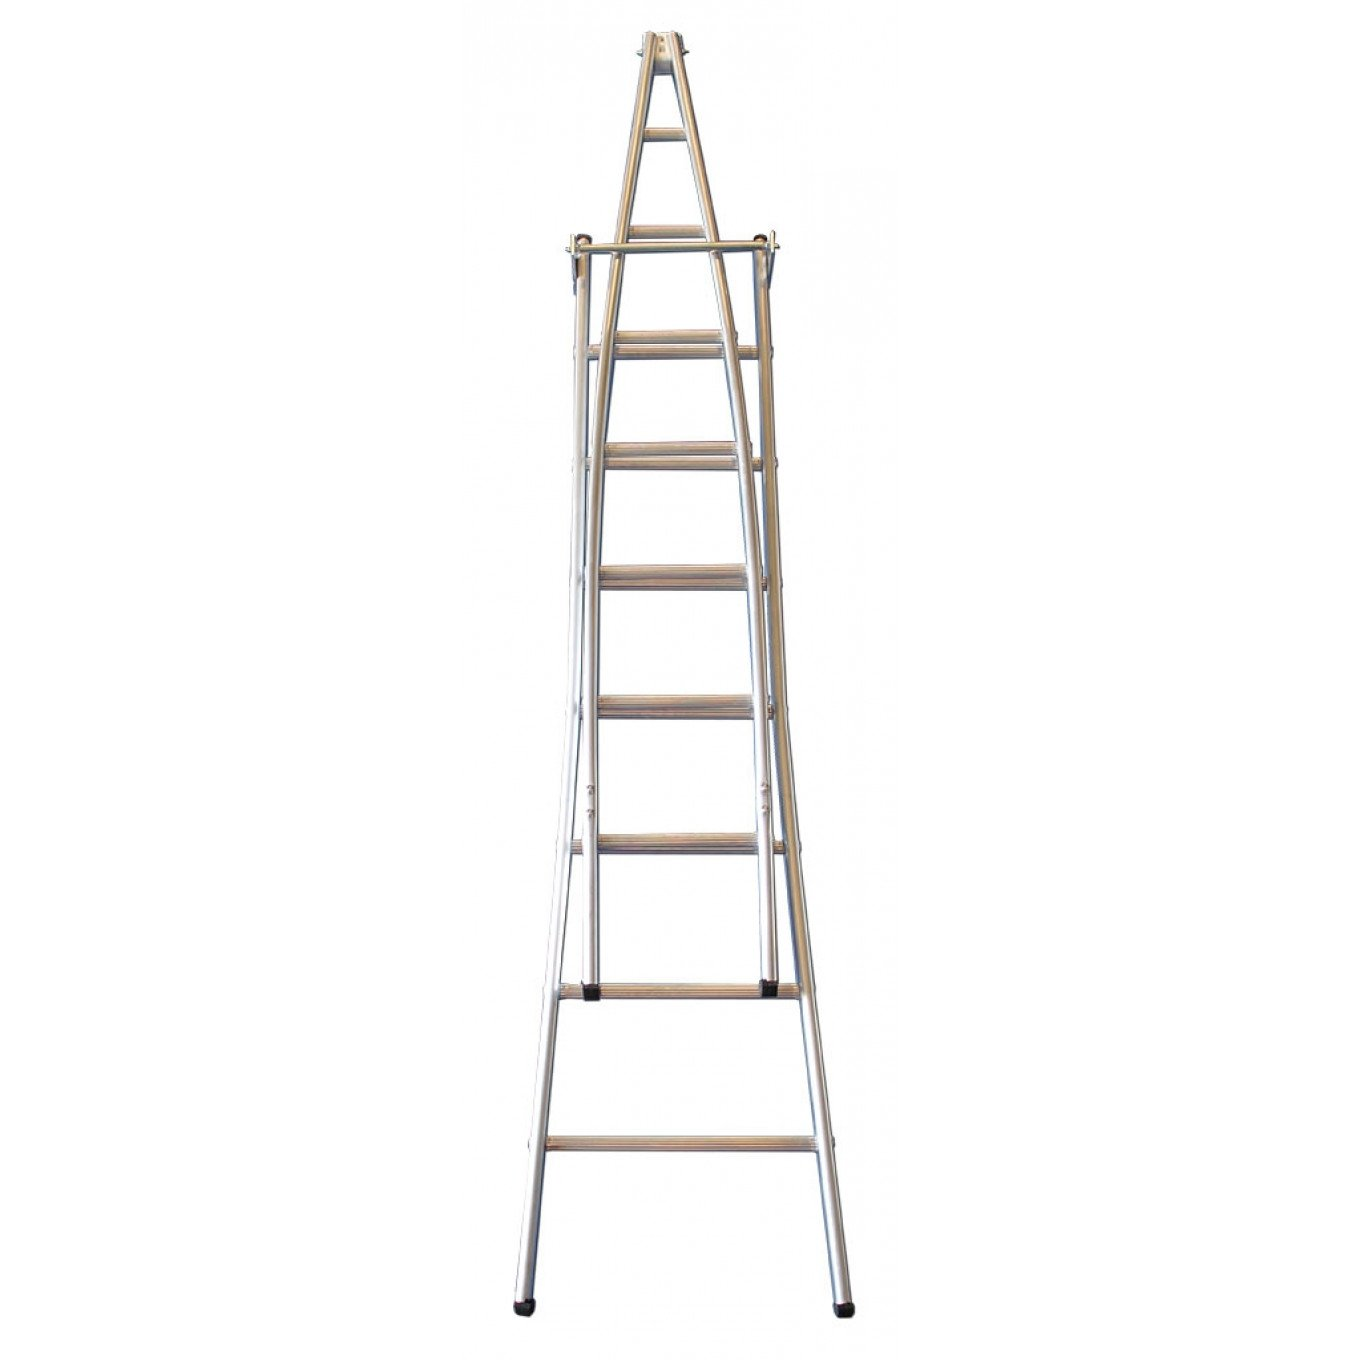 2 Section Window Cleaning Ladders